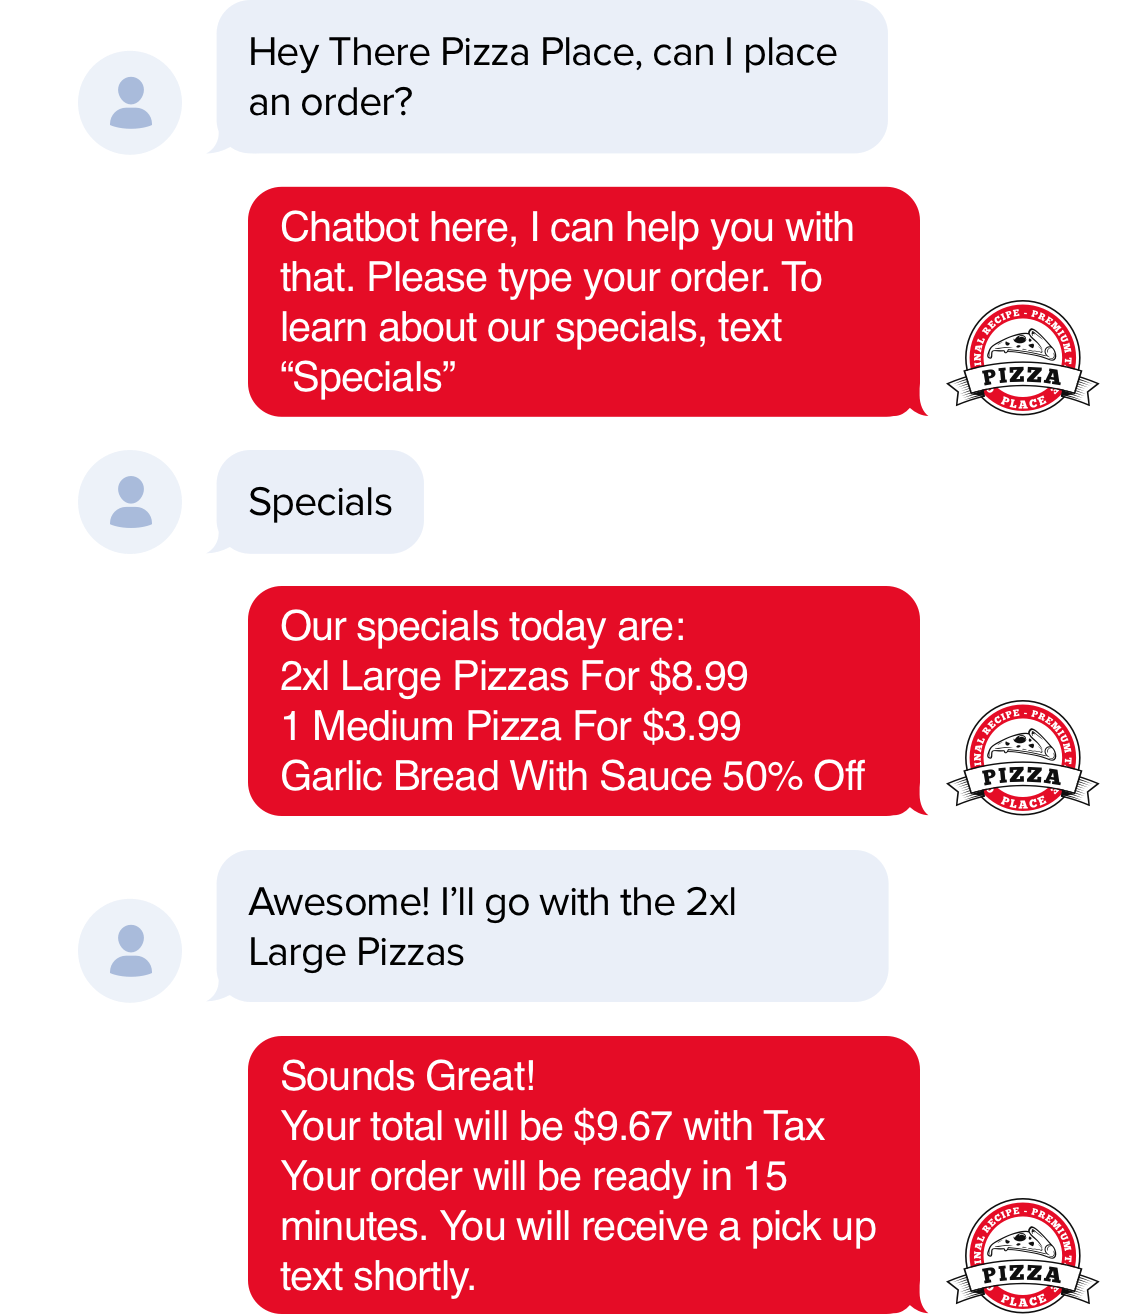 customers can place orders via text messages such as their favorite pizza!